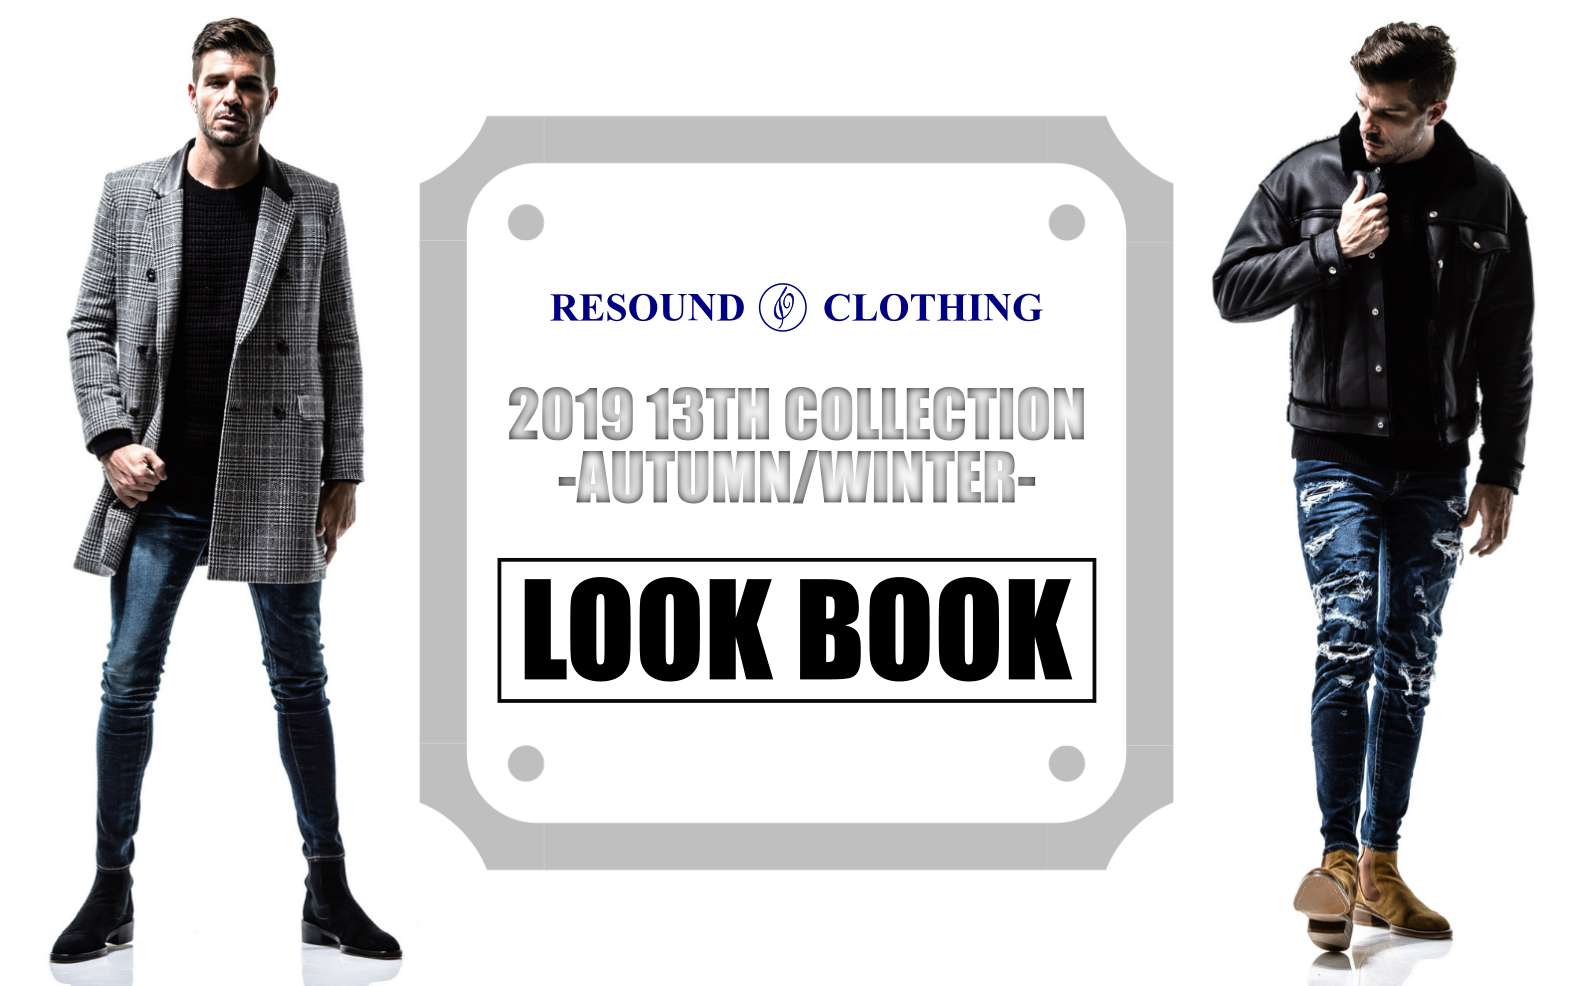 13TH COLLECTION 2019AUTUMN/WINTER LOOK BOOK